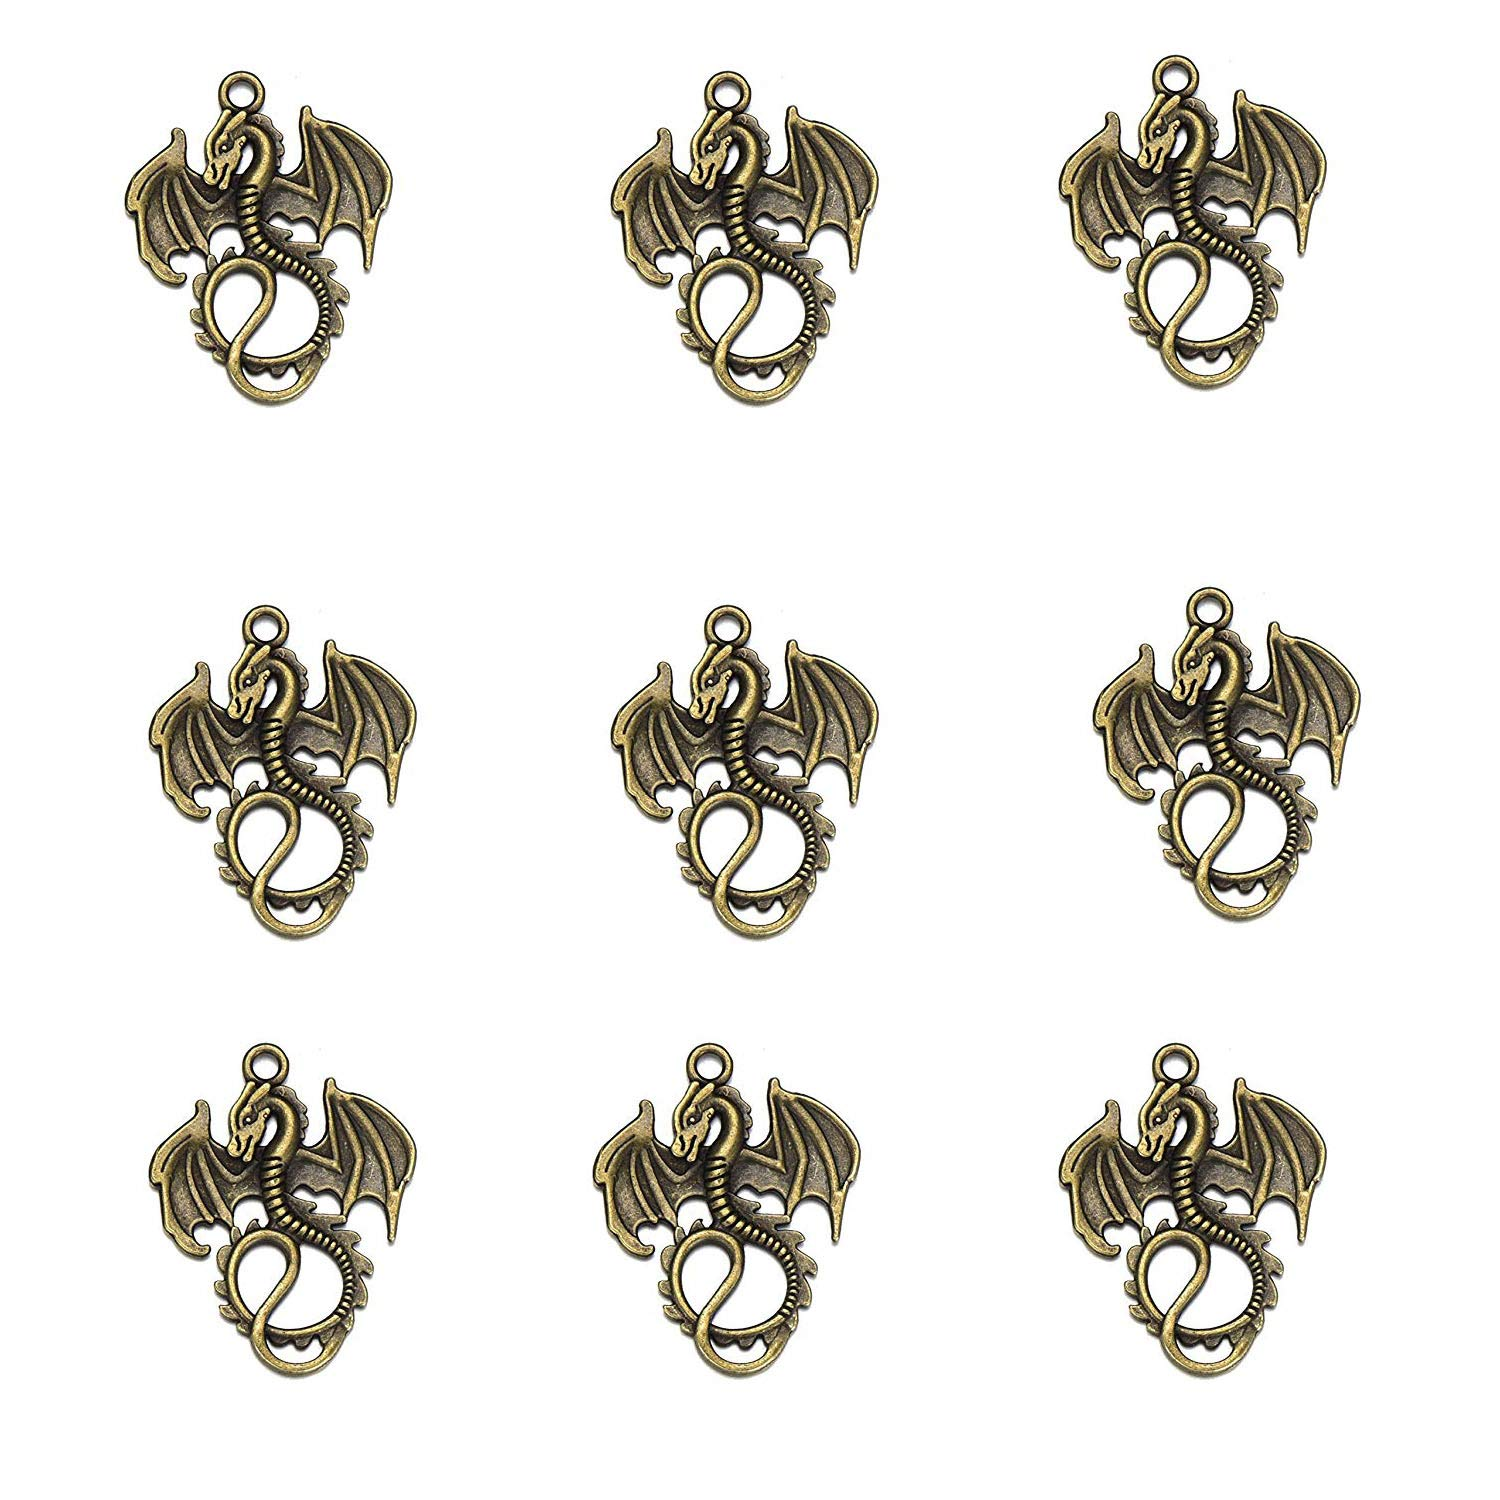 38pcs-Mixed Horse 38pcs Mixed Tibetan Silver Plated Horse Pegasus Charms Pendants for Bracelet Necklace Jewelry Accessories Making DIY Handmade Crafts